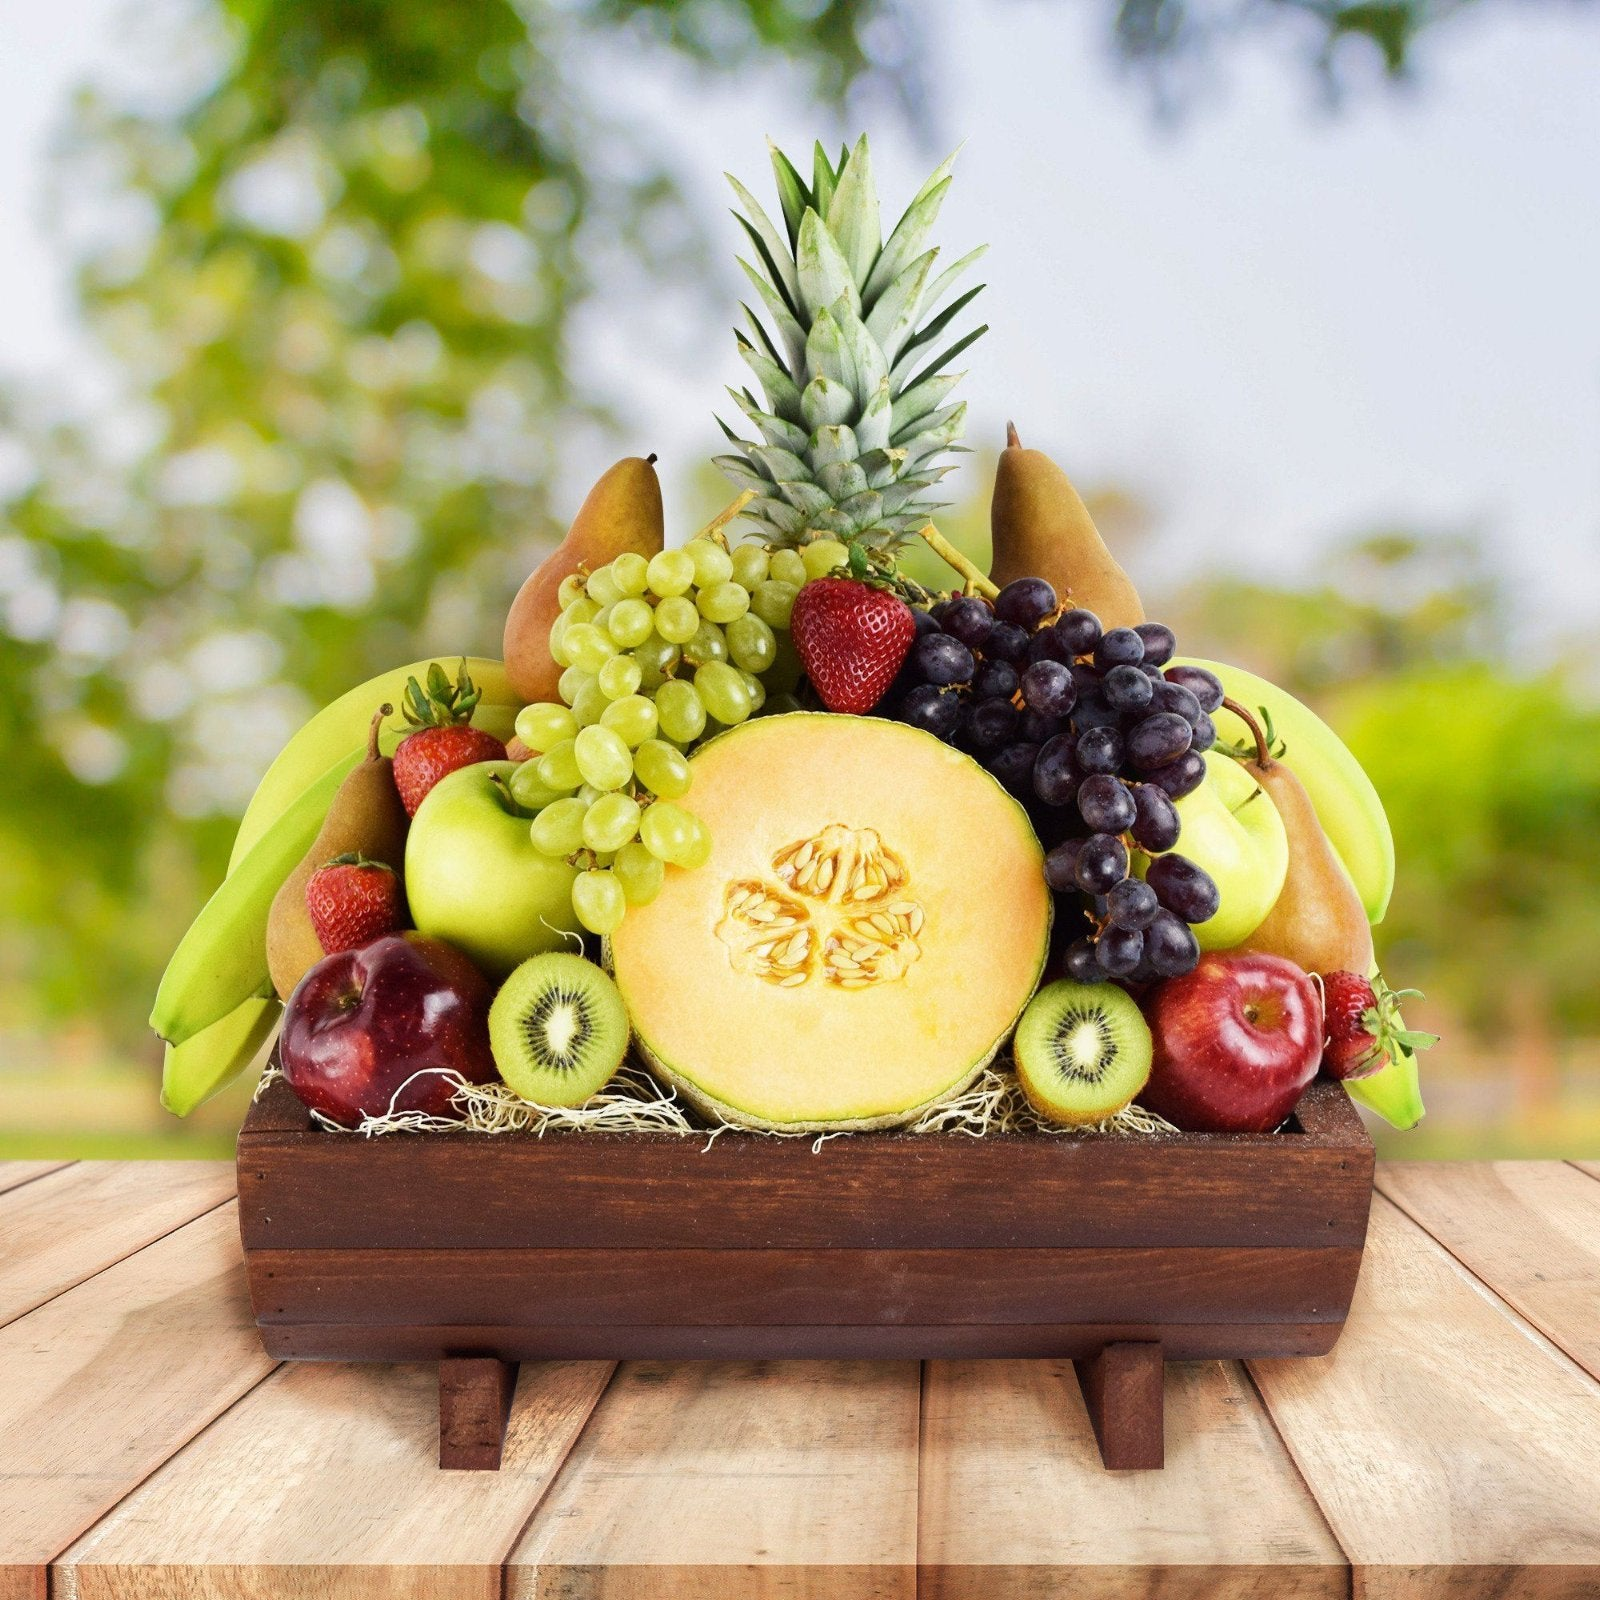 The Grand Passover Fruit Basket